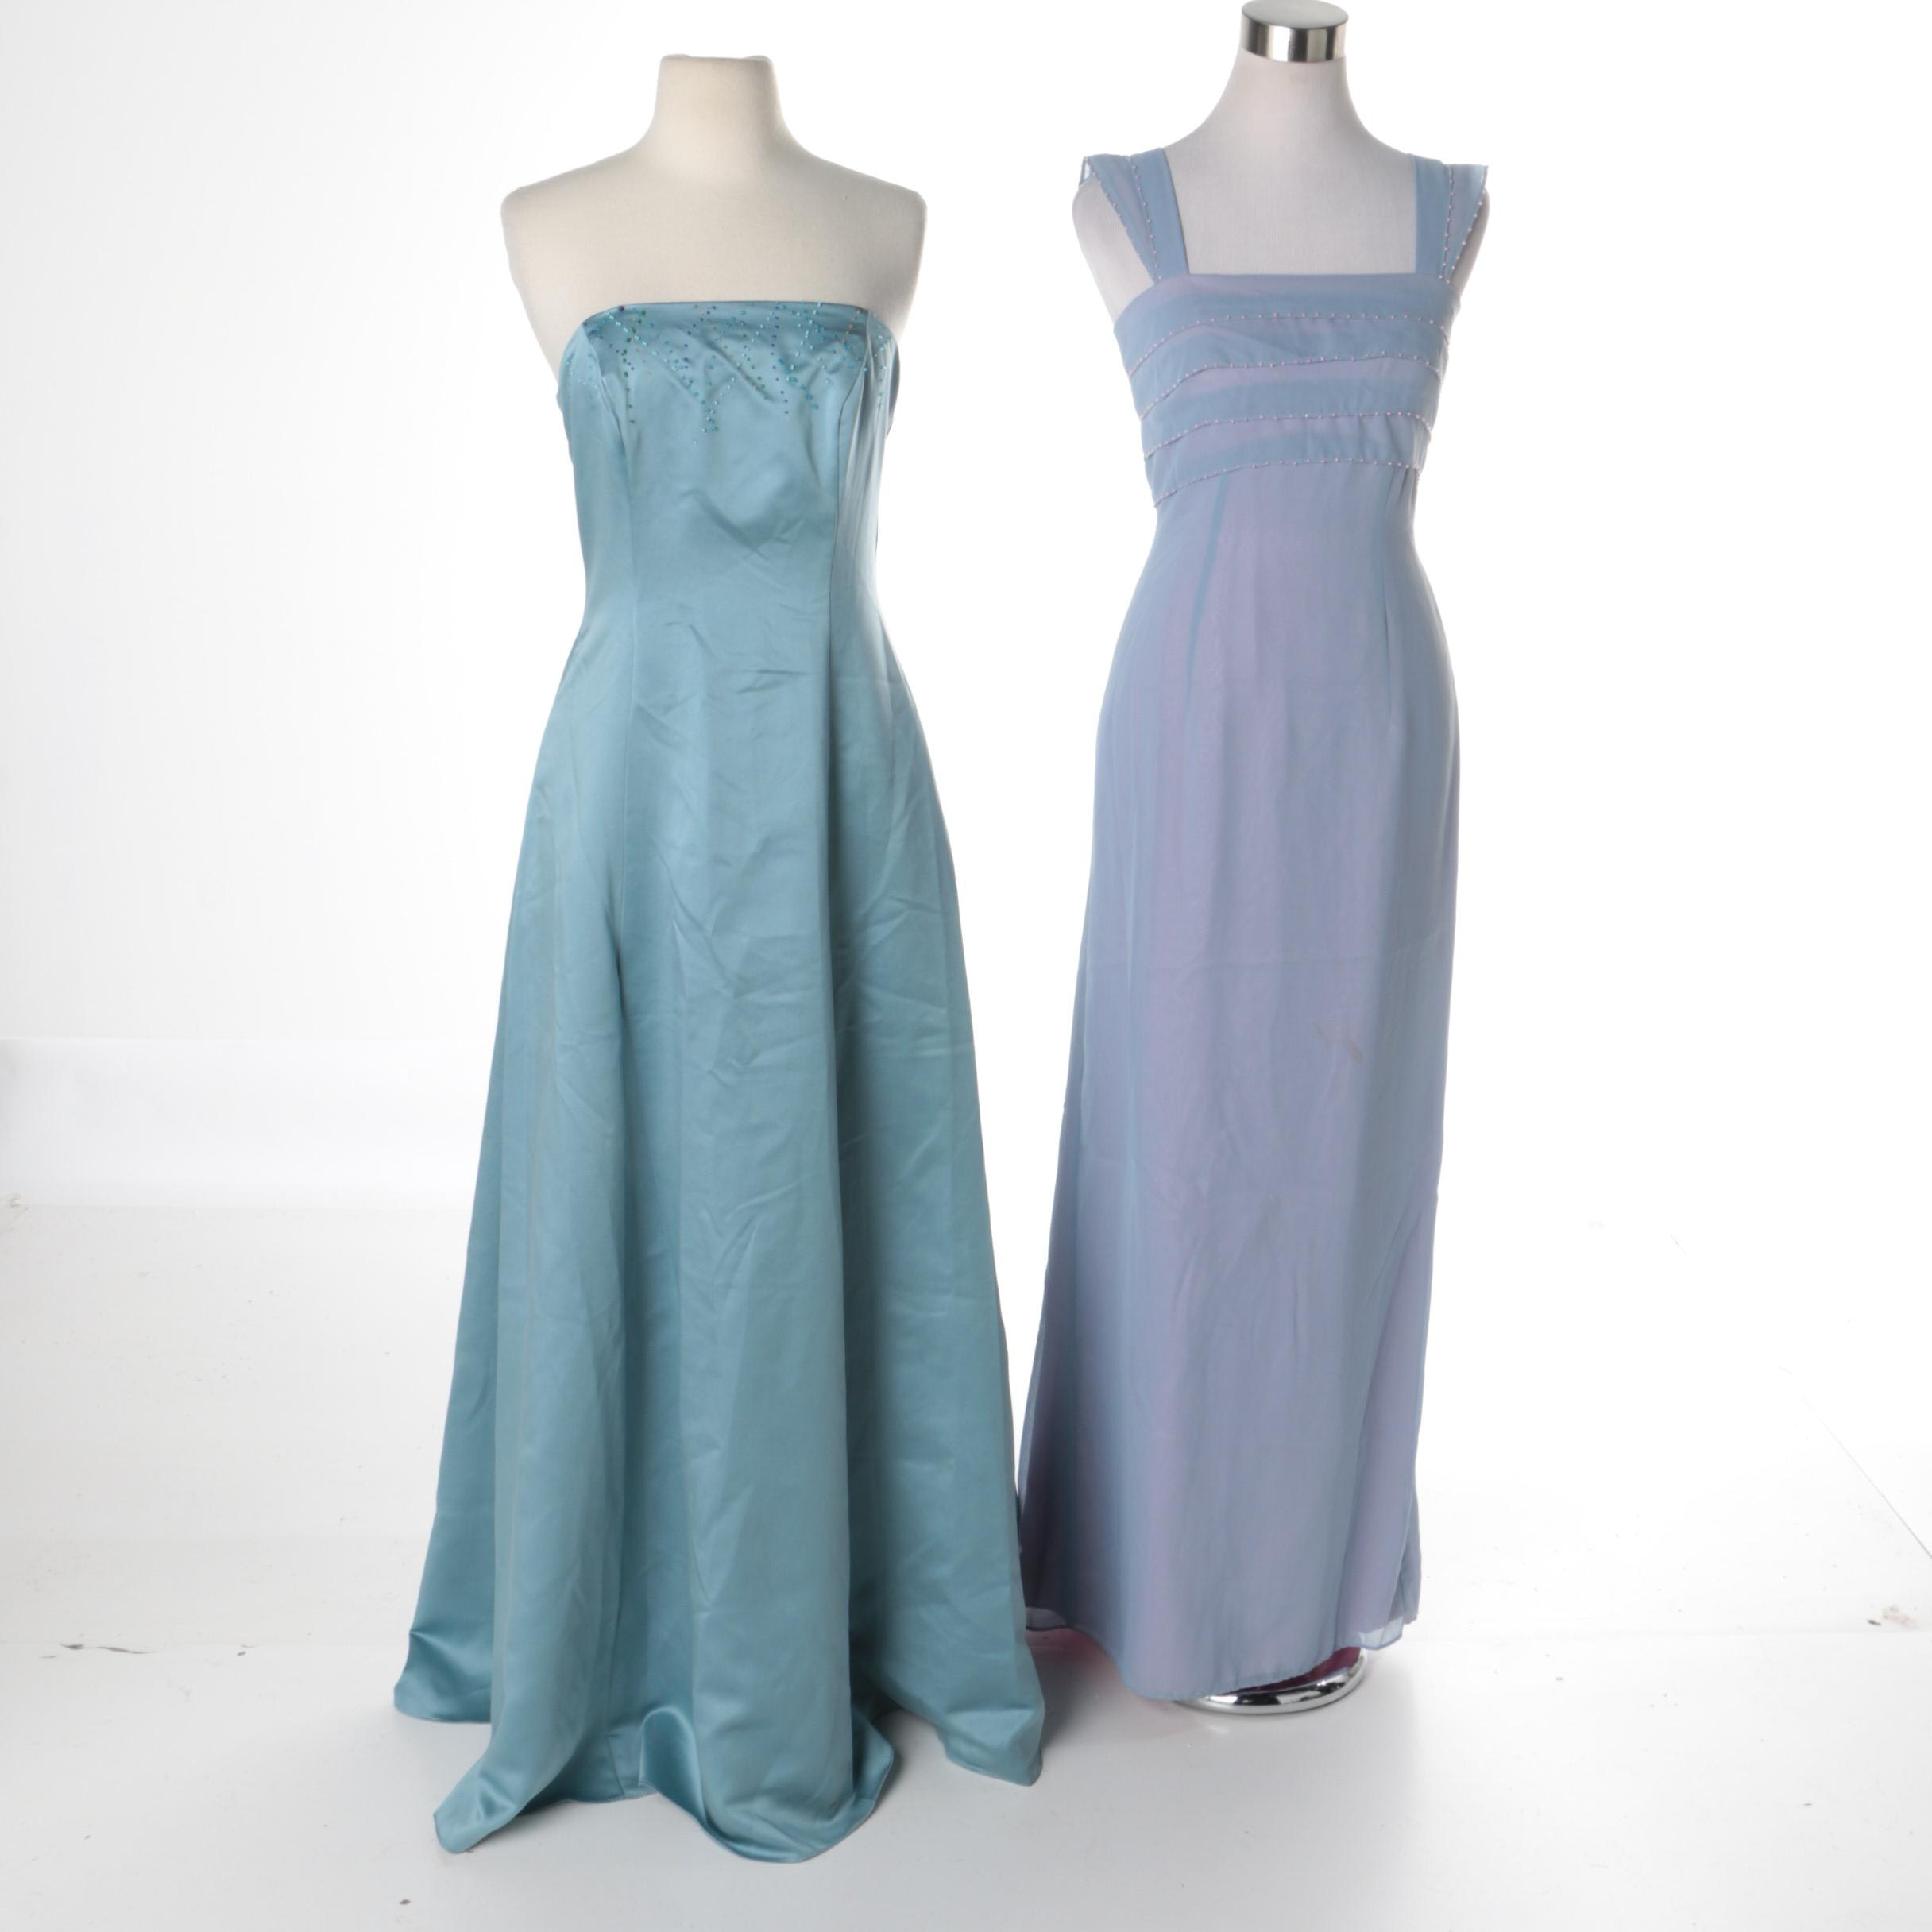 Women's Bianchi and Miiichelle Formal Gowns